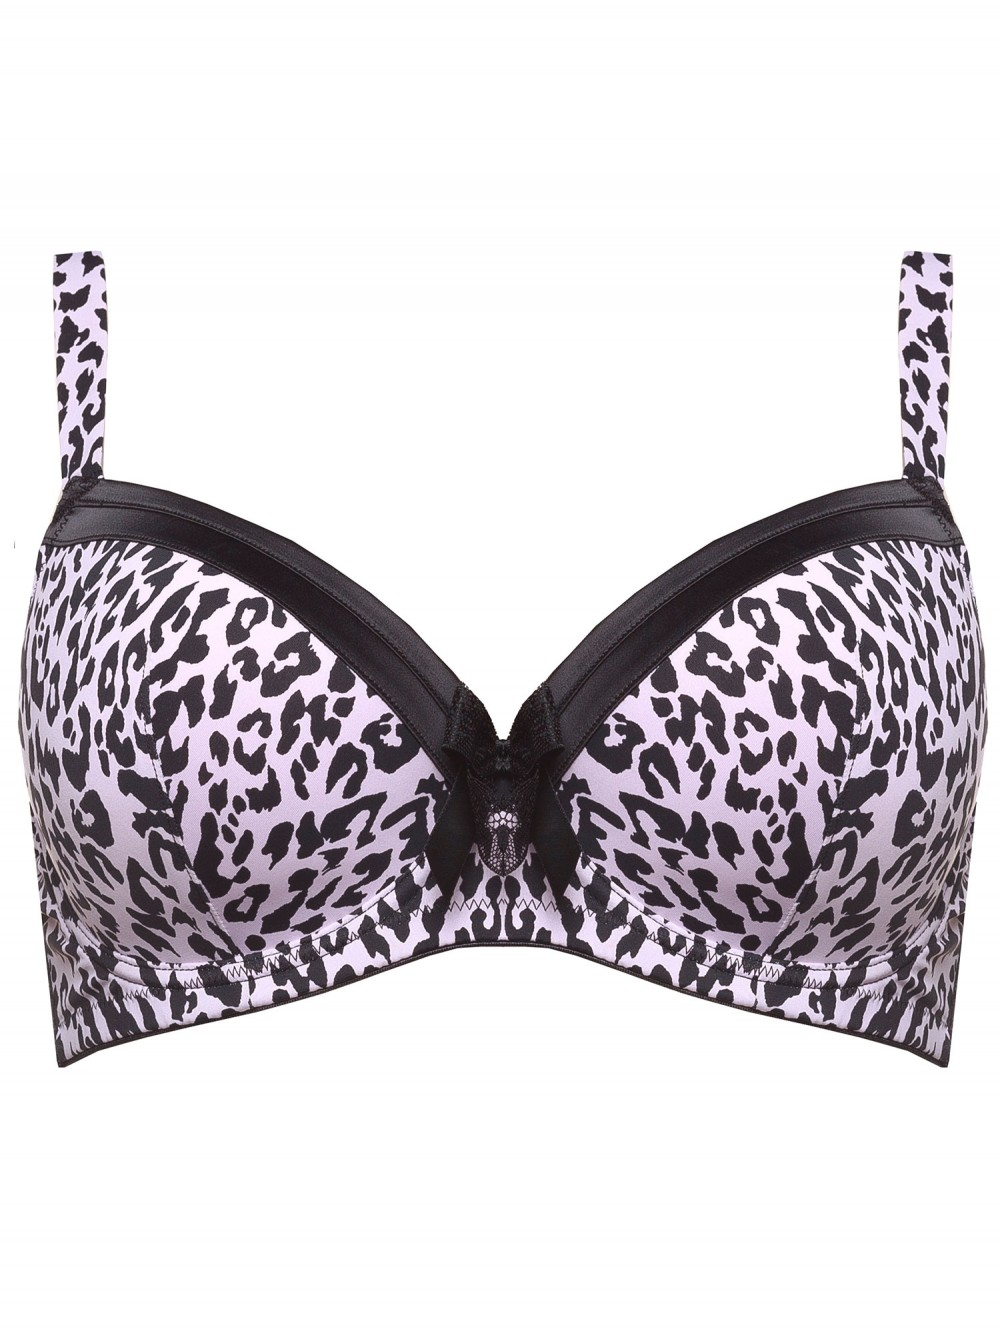 ABY soutien-gorge push-up BC